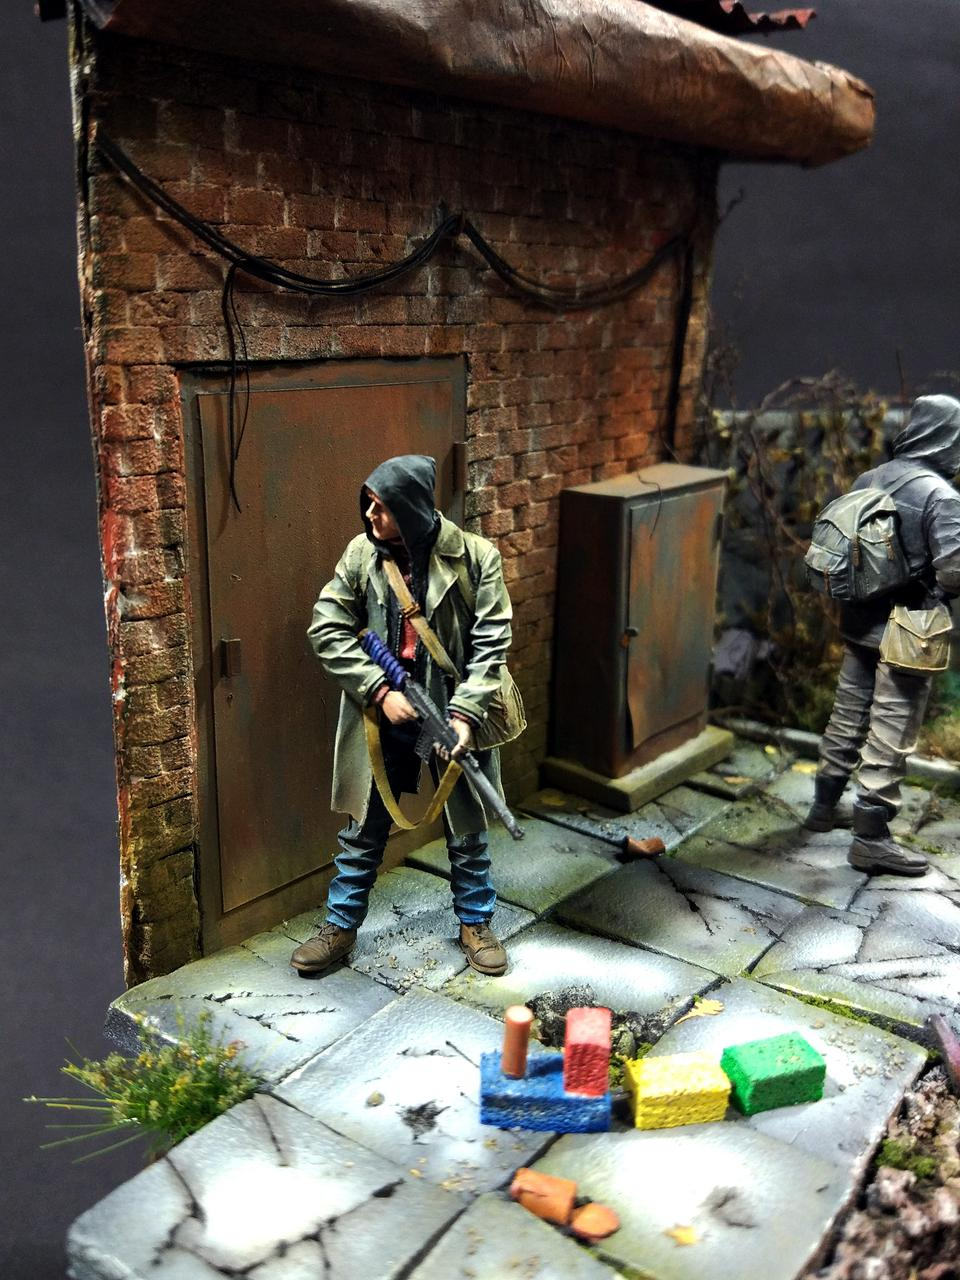 Dioramas and Vignettes: New undiscovered world, photo #10